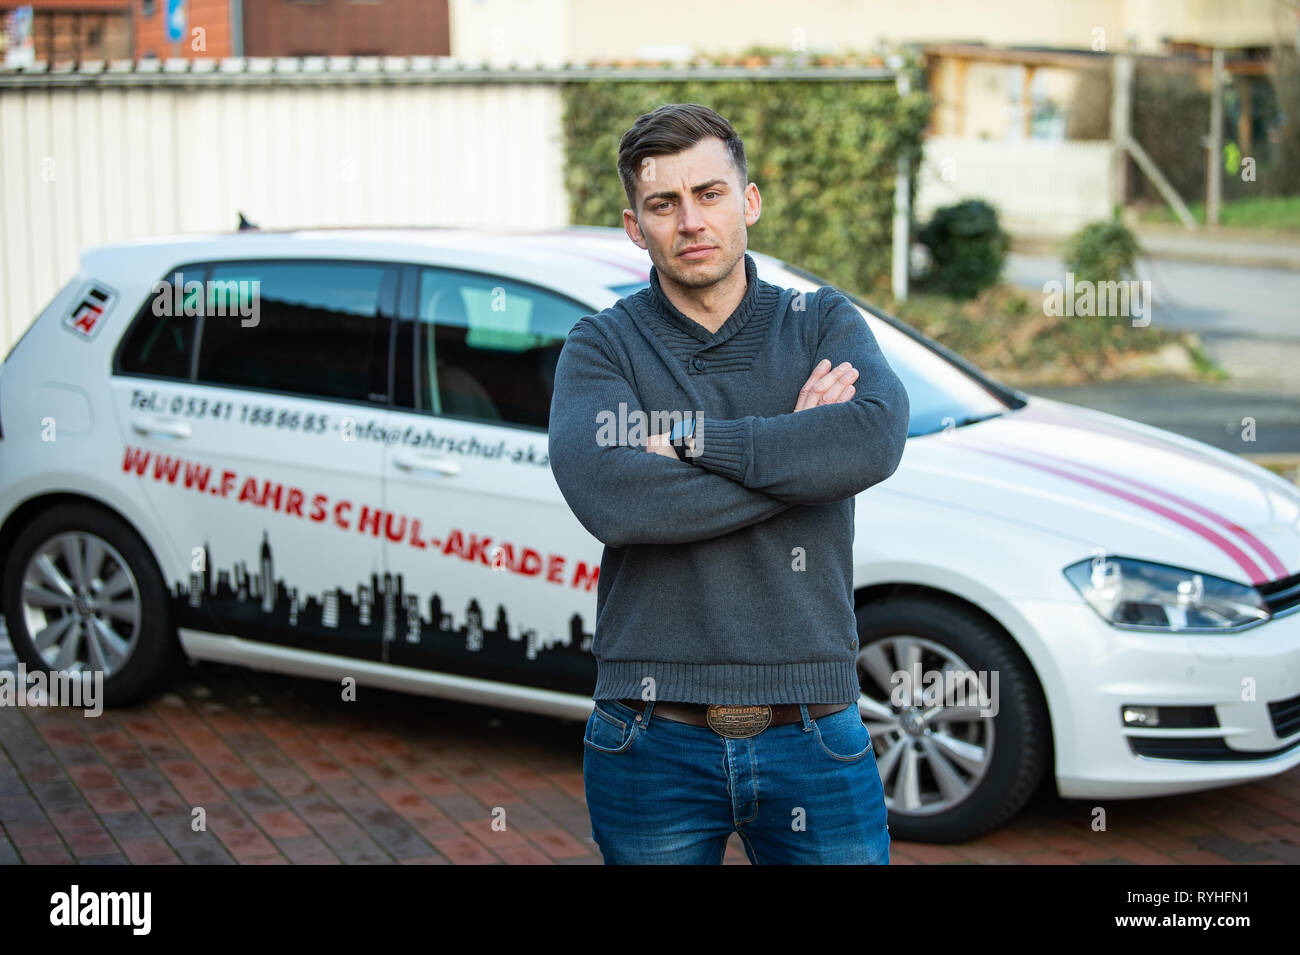 Lengede, Germany. 05th Mar, 2019. Tom Gerhard Tiessen, head of the A and G Driving Academy, stands in front of a driving school car. The European Court of Justice (ECJ) will decide on 14.03.2019 whether driving schools will be exempted from VAT. Tiessen had initiated the proceedings. Credit: Christophe Gateau/dpa/Alamy Live News - Stock Image